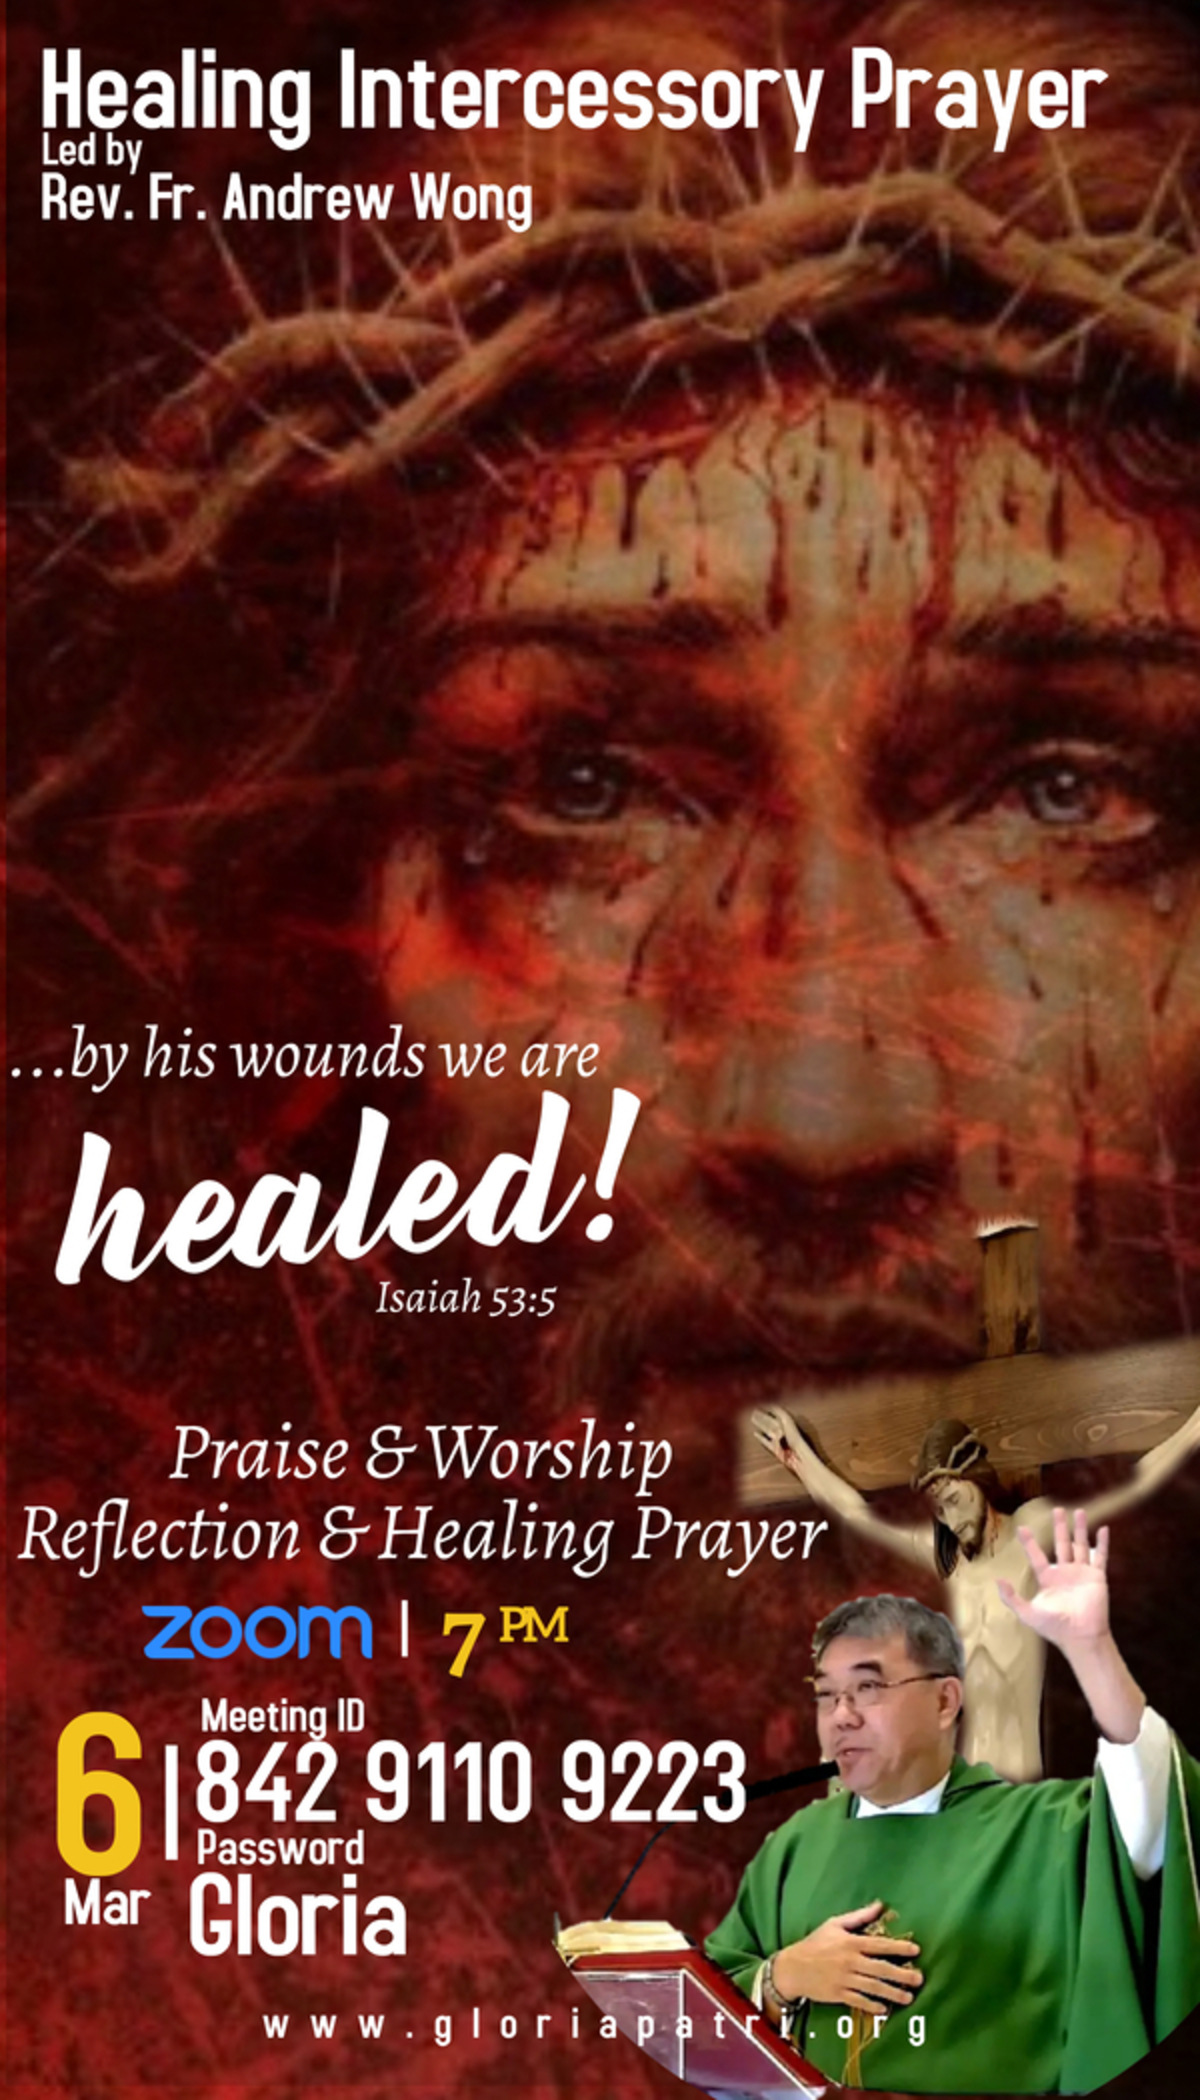 6th Mar Intercessory Healing Prayer